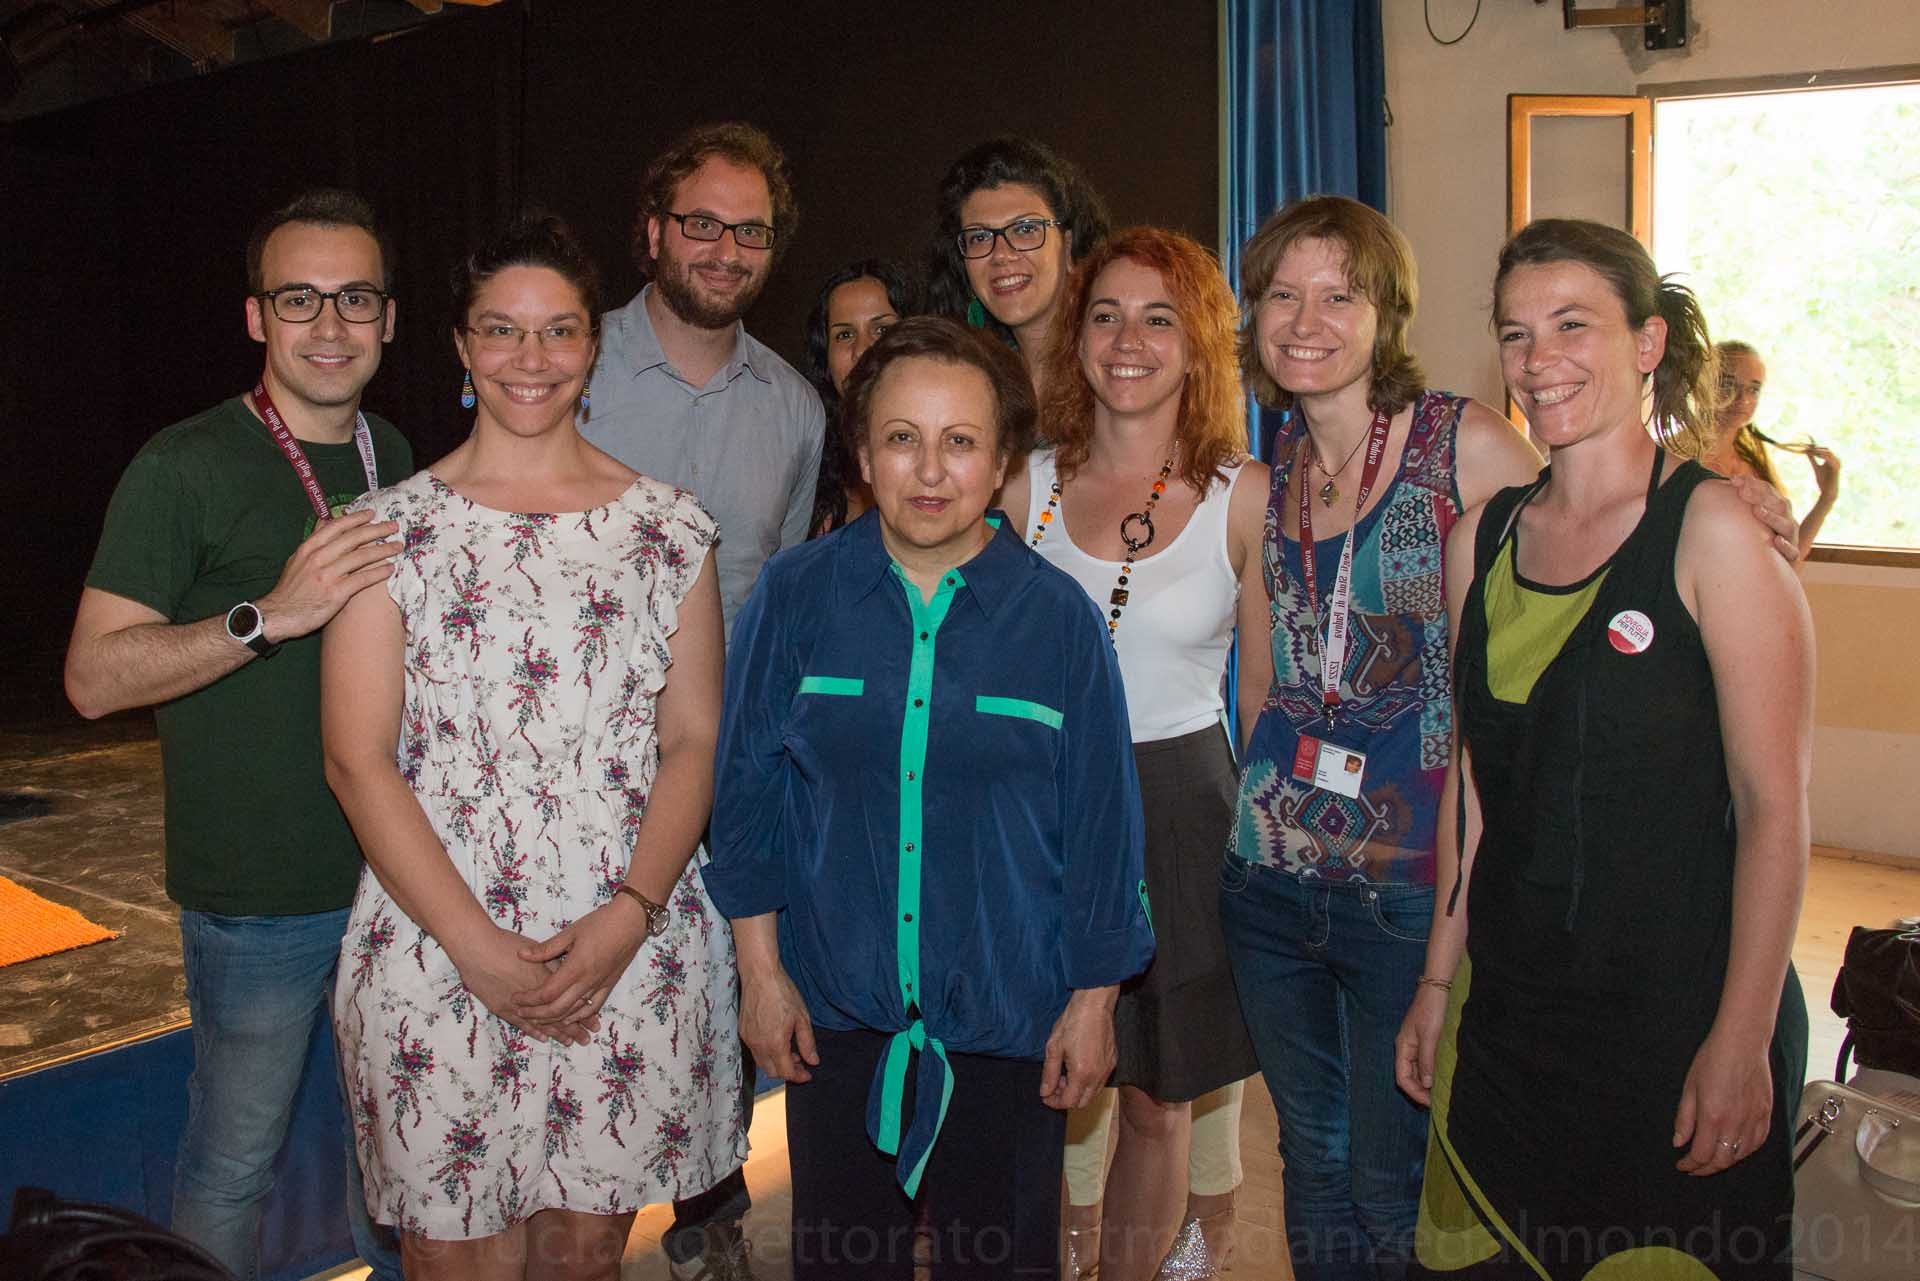 Group shot of students, graduates and volunteers in Civil Service of the University of Padua with Shirin Ebadi.